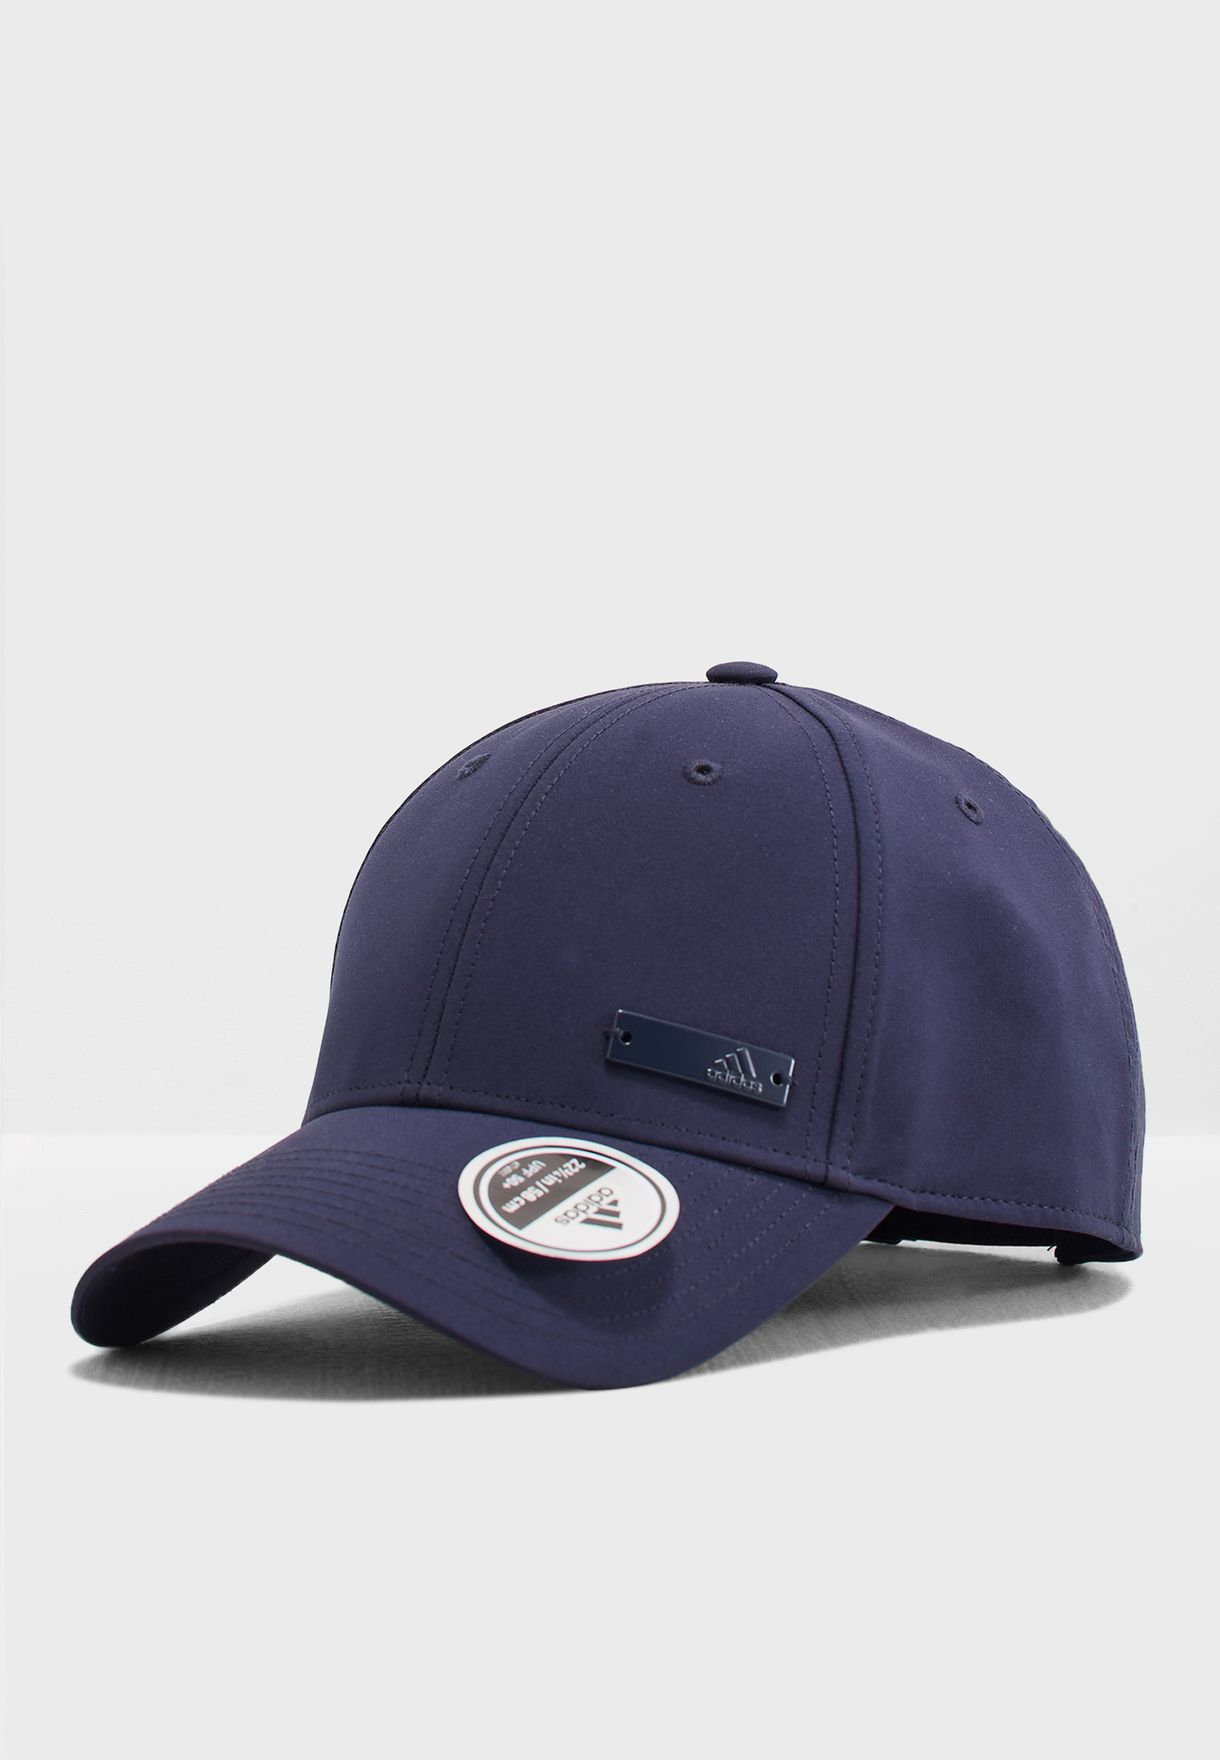 c8e600d72c0 Shop adidas navy 6 Panel Cap DJ0945 for Men in Saudi - 14448AC56XXP